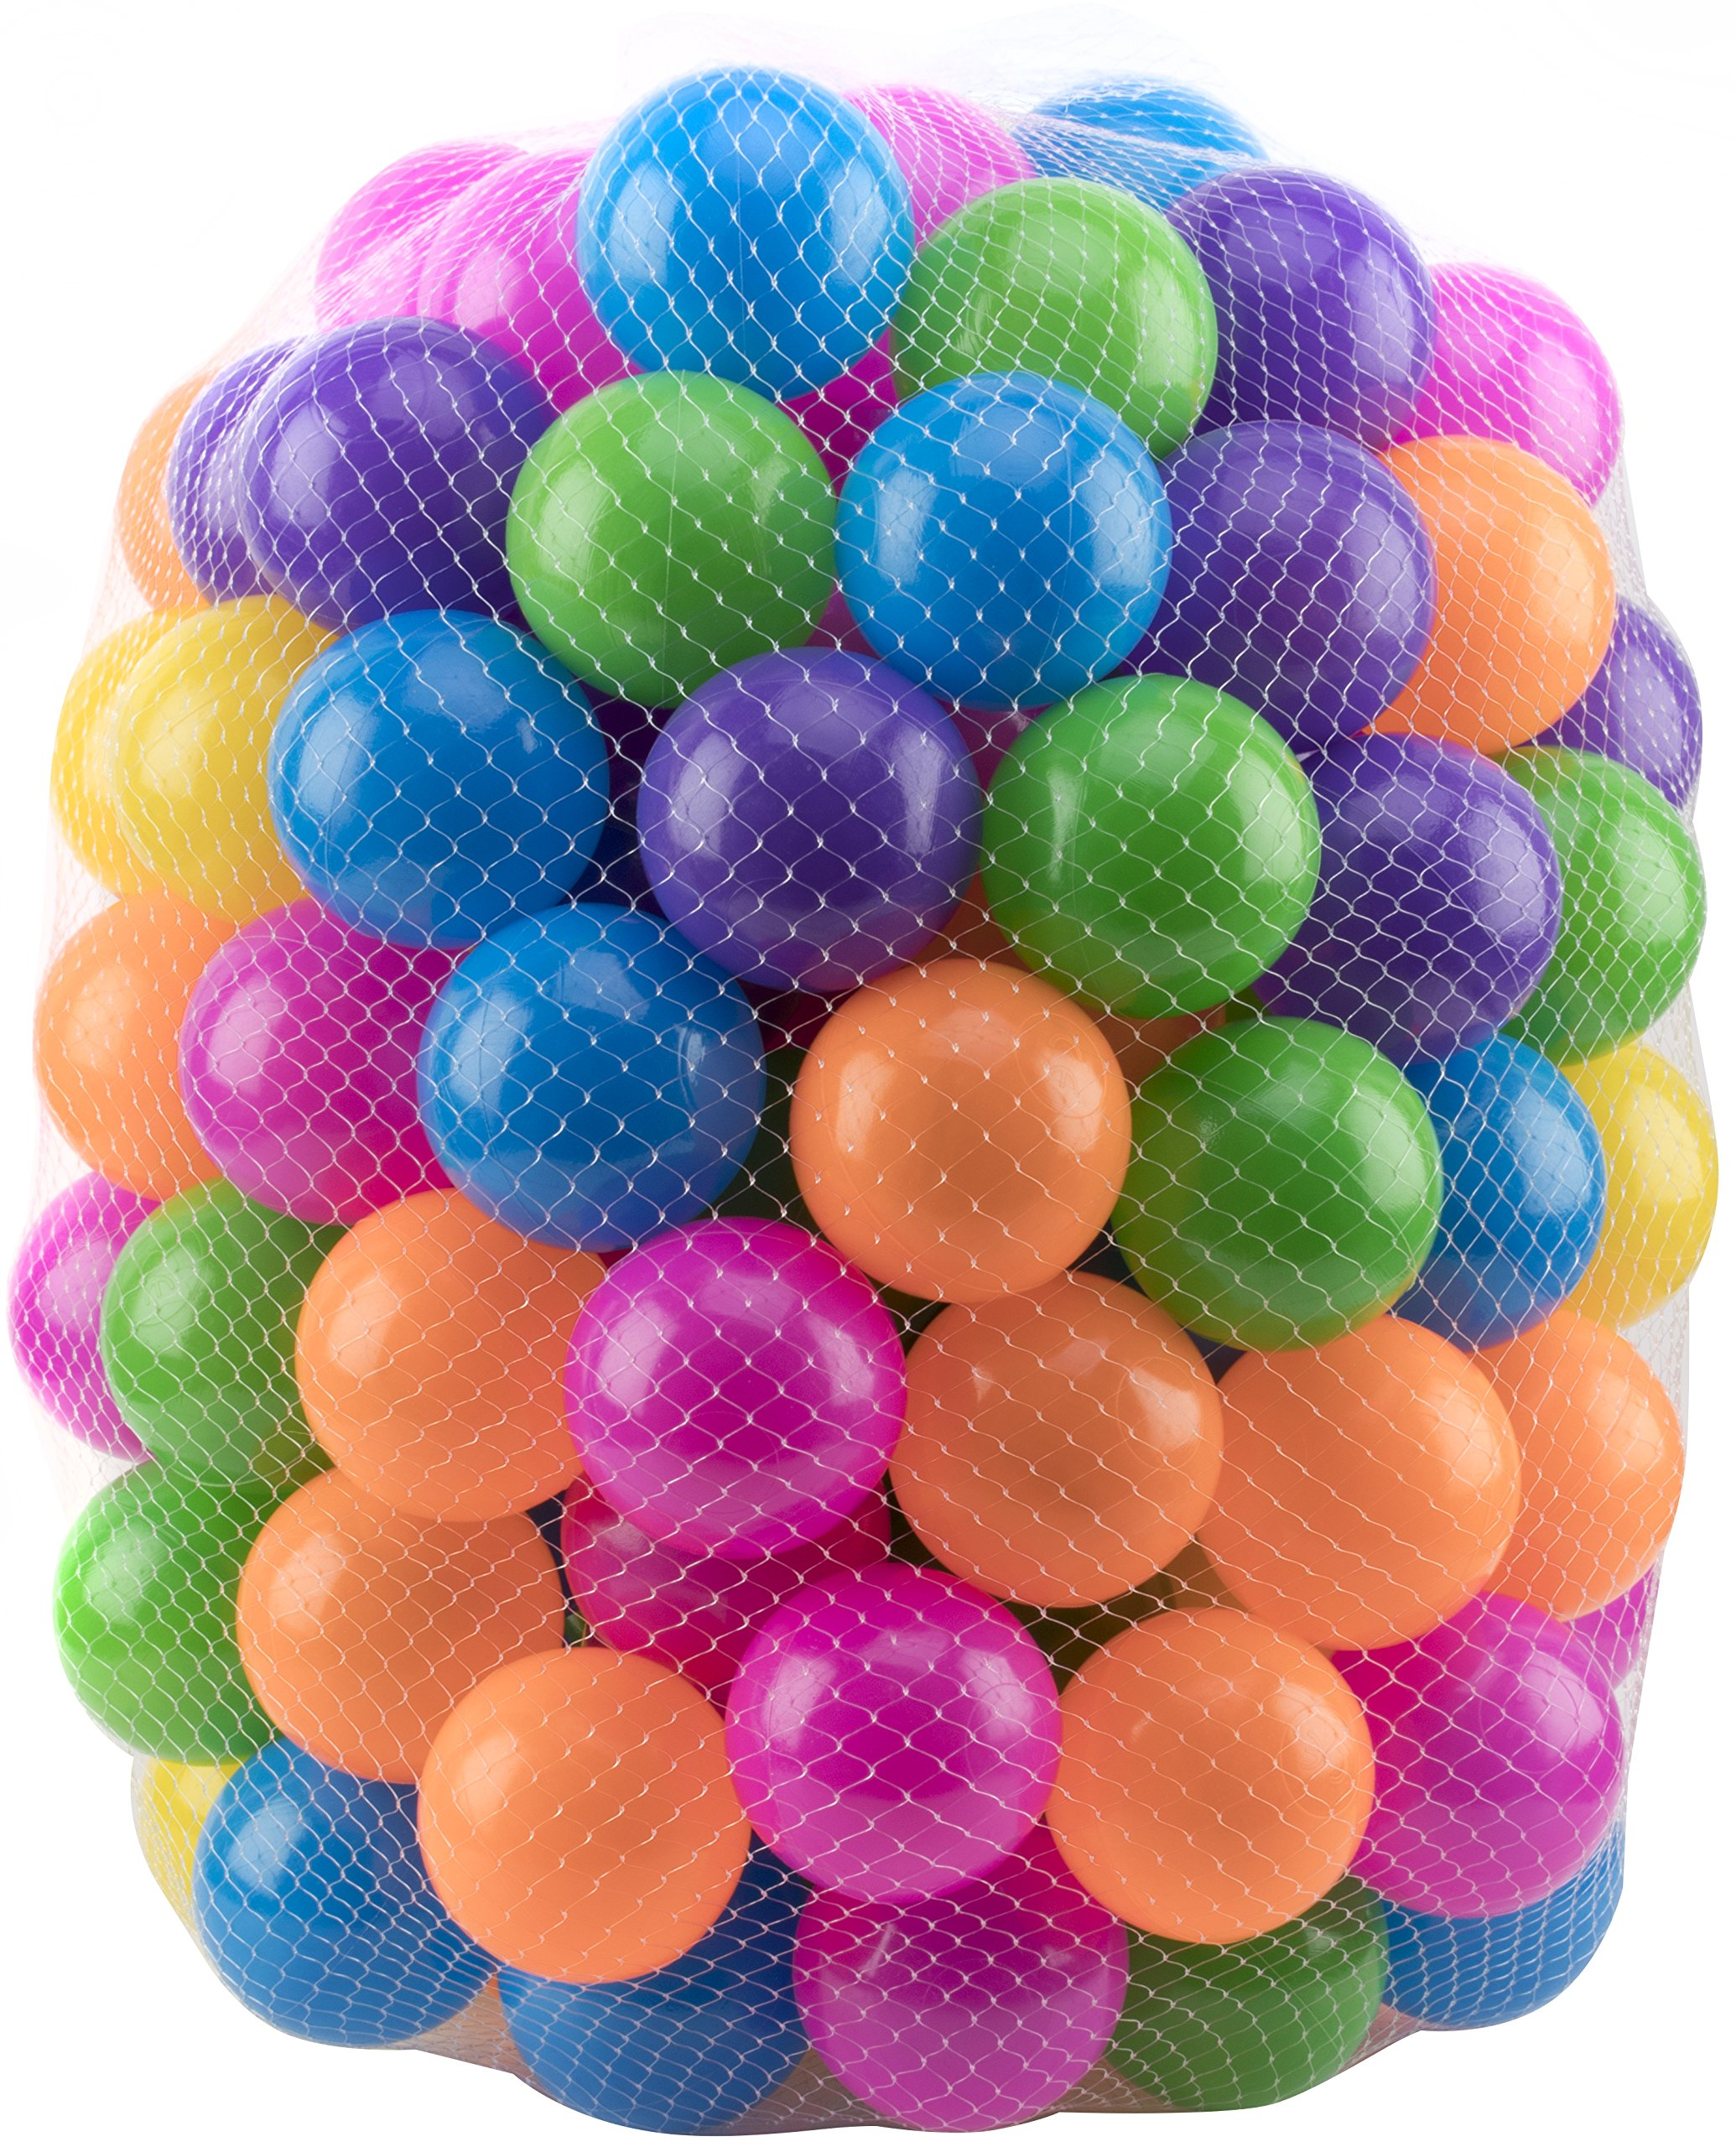 Play22 Ball Pit 200 Pack - Ball Pit Balls Crush Proof BPA Free - Includes Reusable Zipper Mesh Bag - Colorful Fun Plastic Balls - Ball Pit for Kids and Baby - Ball Pit for Any Ball Pool - Original by Play22 (Image #3)